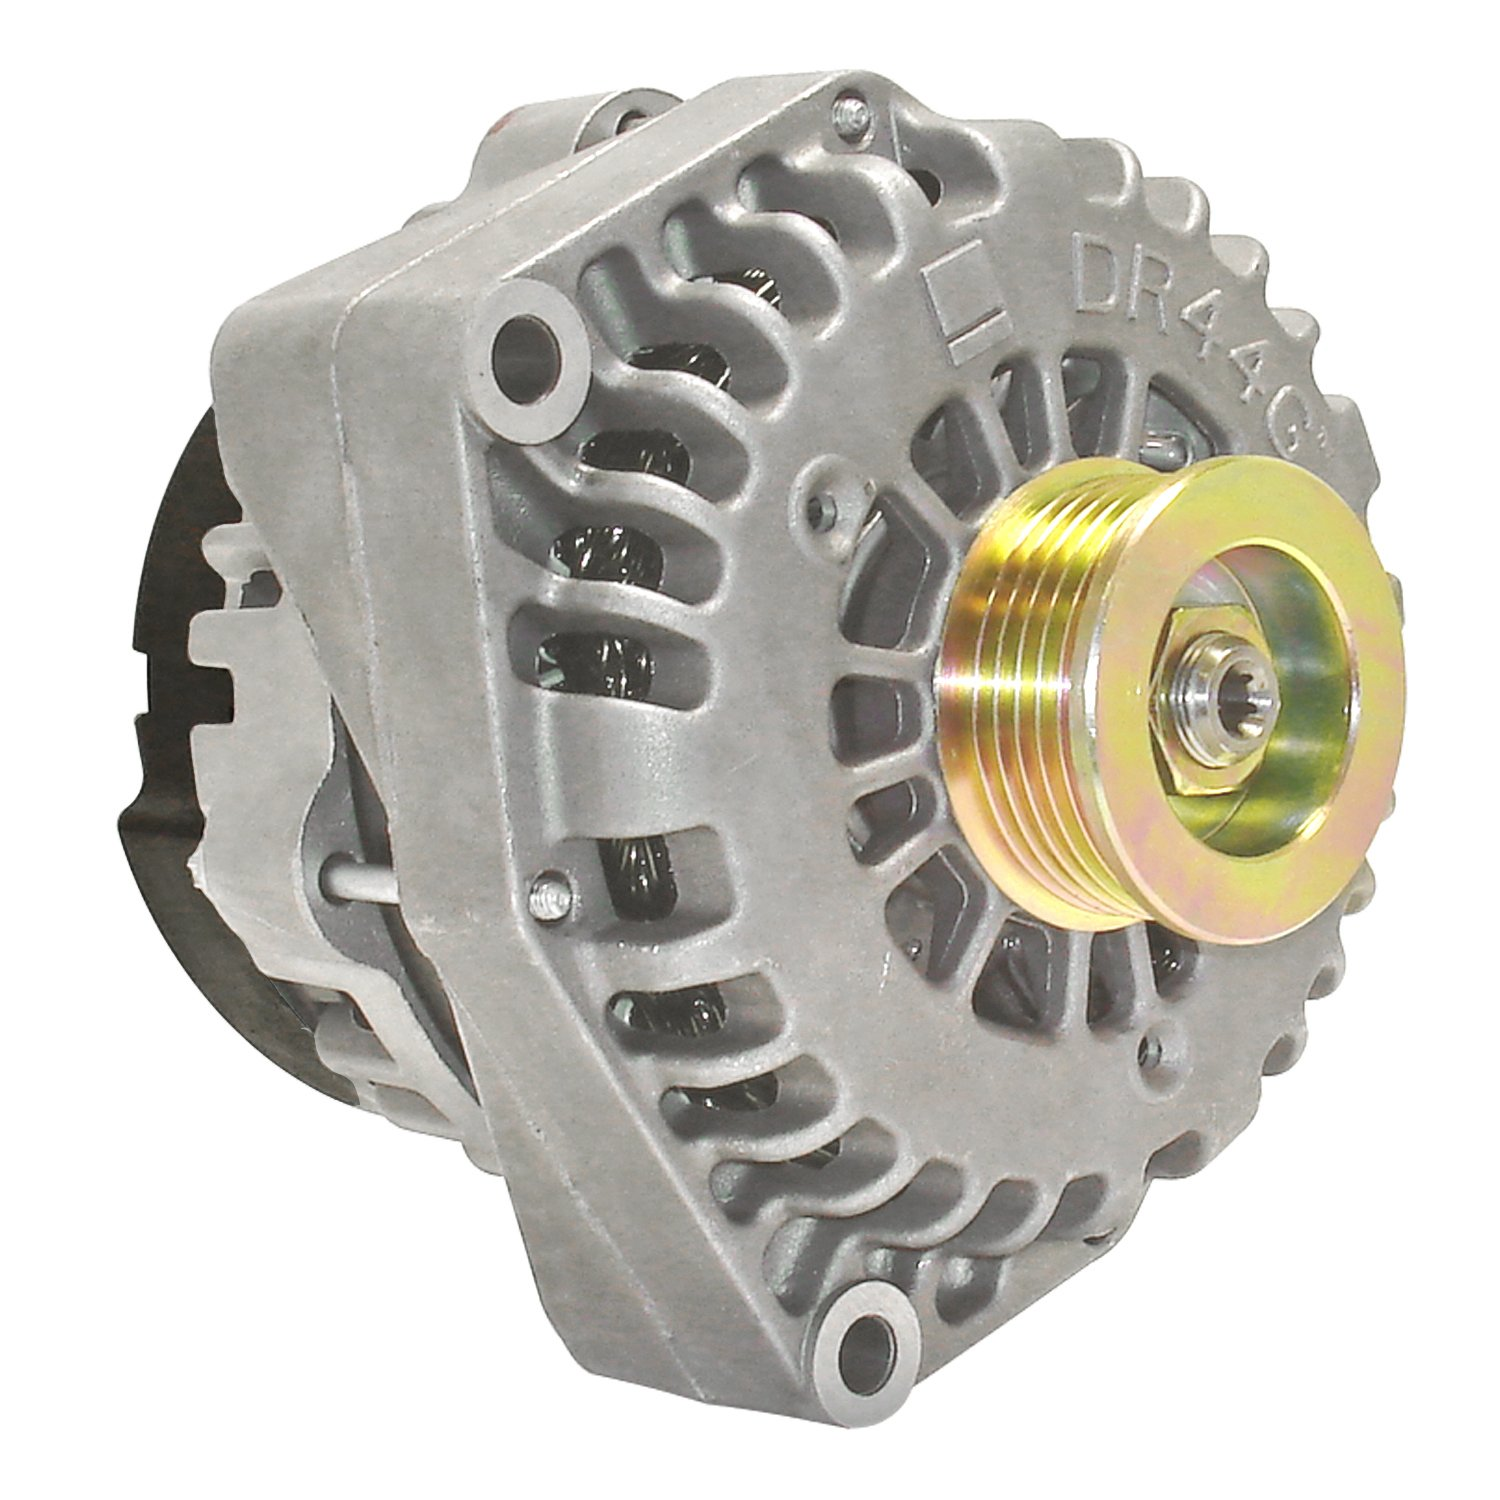 ACDelco 334-2529A Professional Alternator, Remanufactured by ACDelco